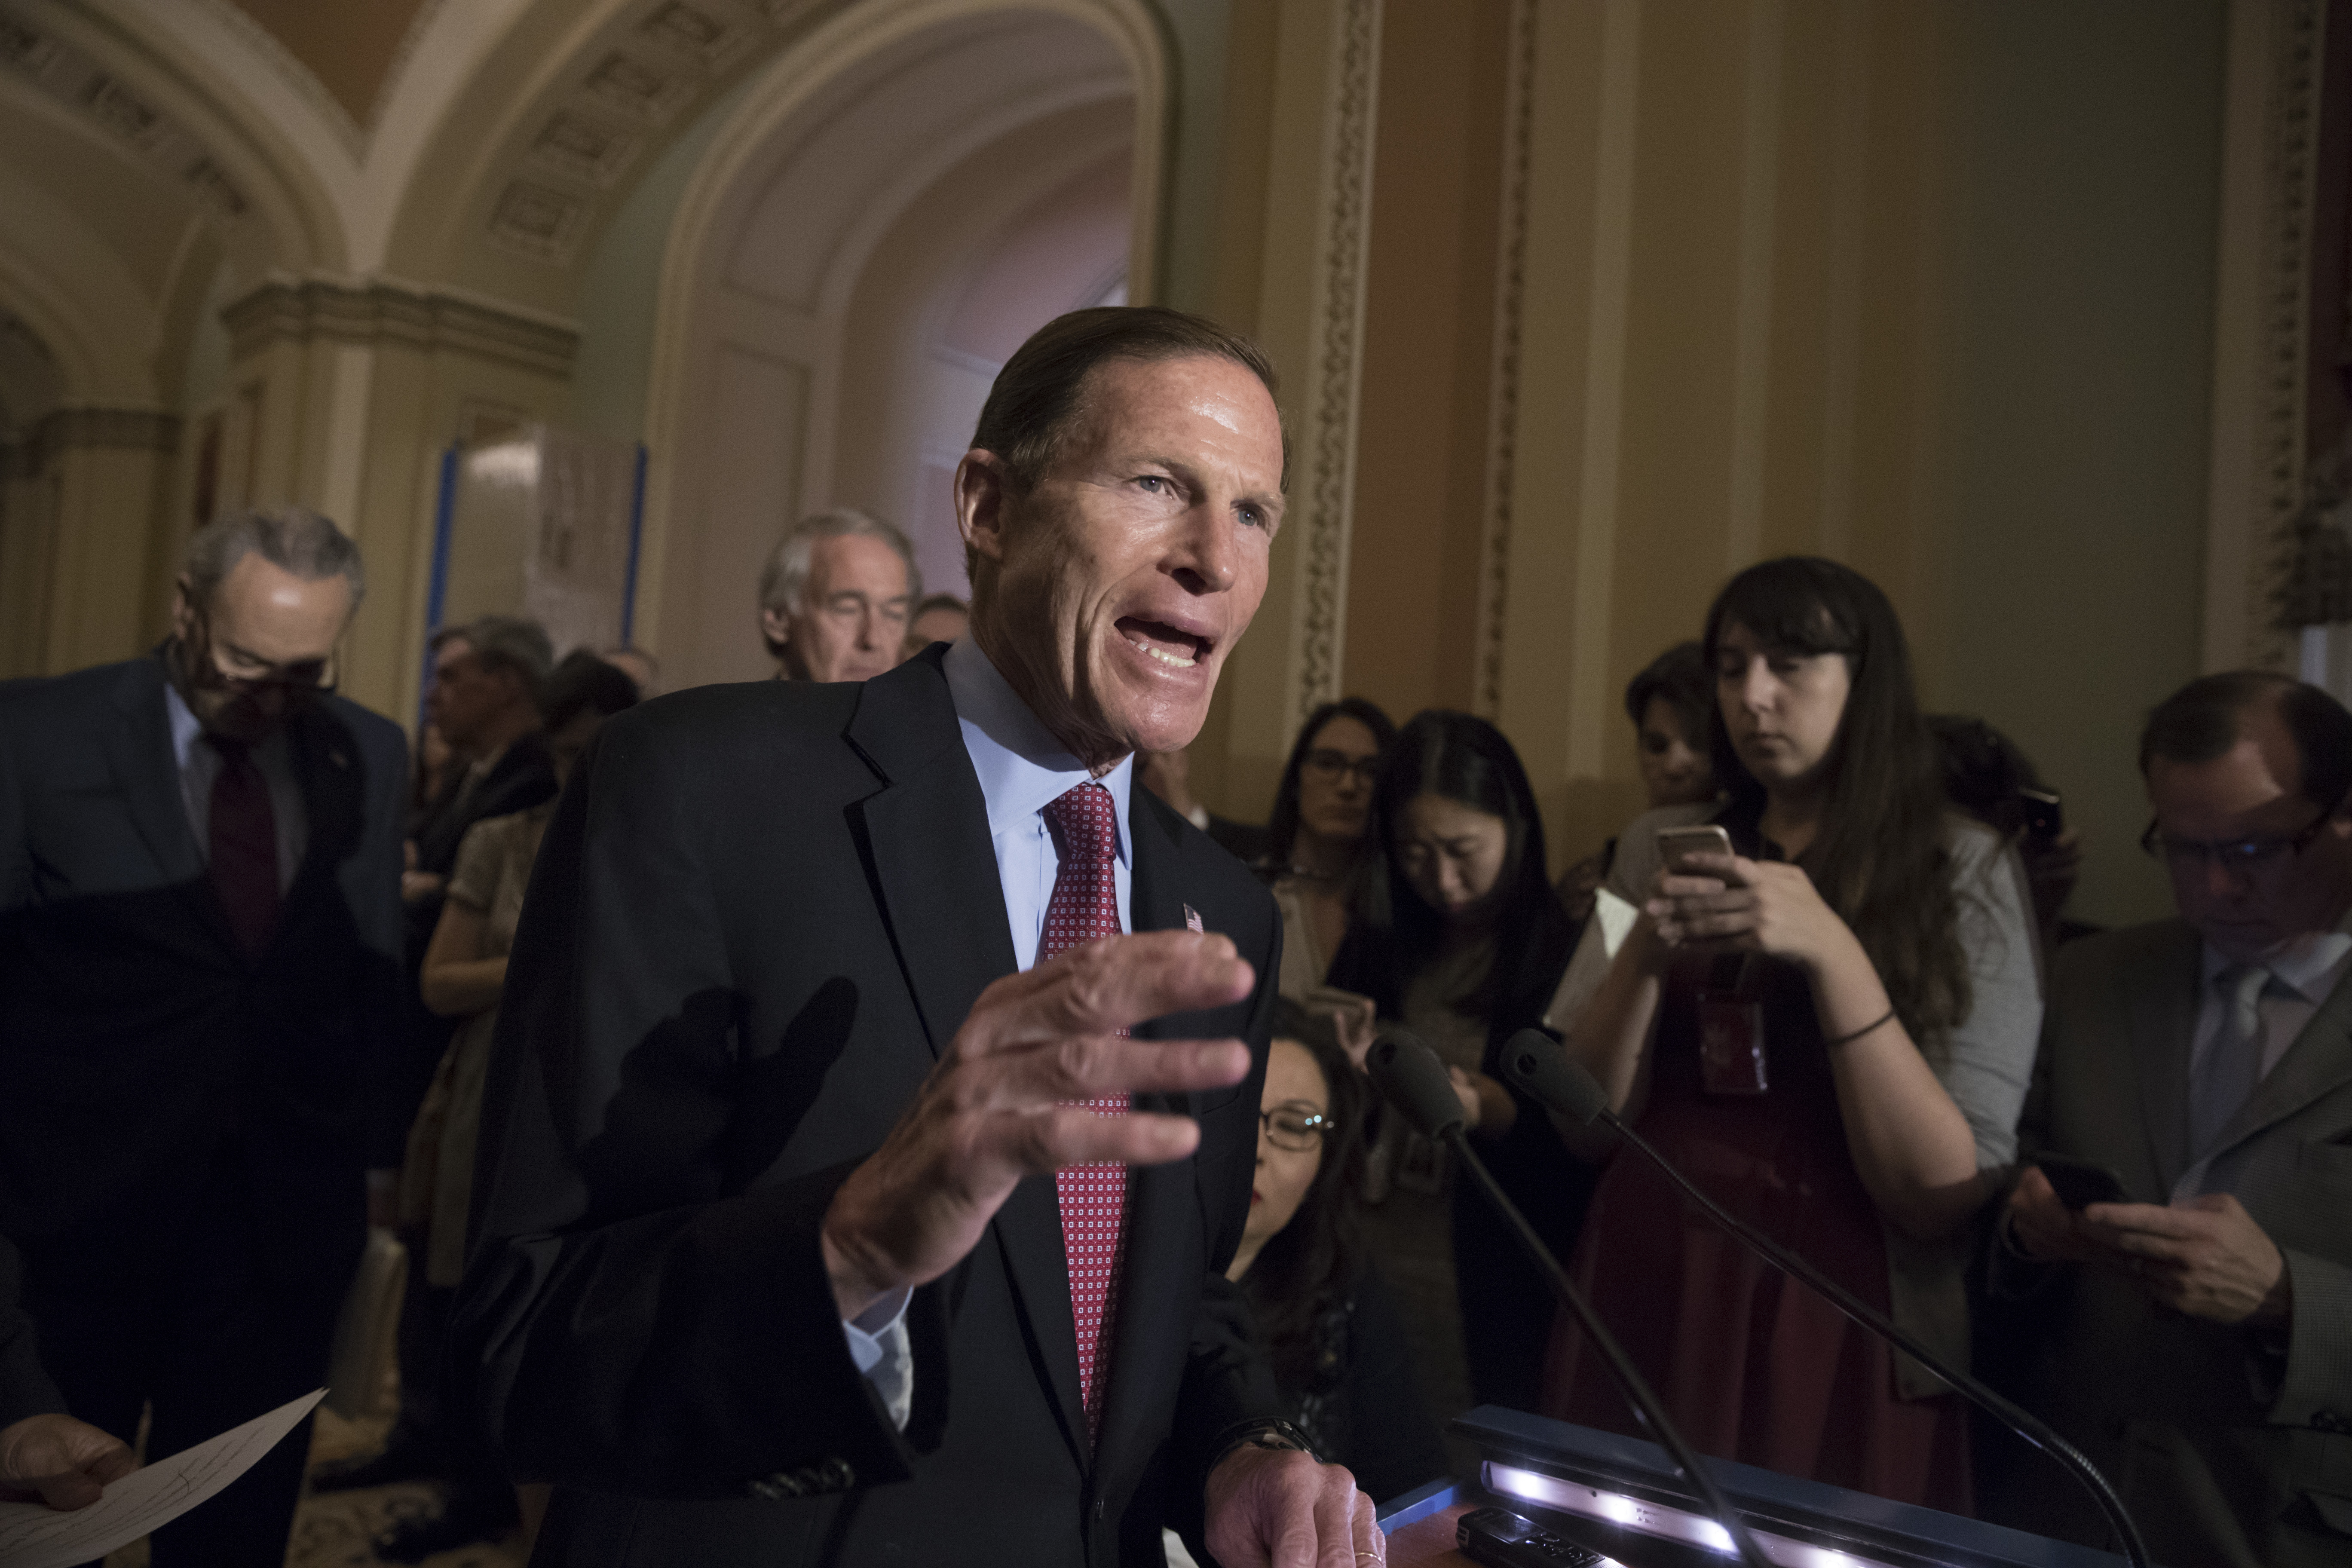 photo image Richard Blumenthal: There is 'mounting evidence' of obstruction in Trump investigation